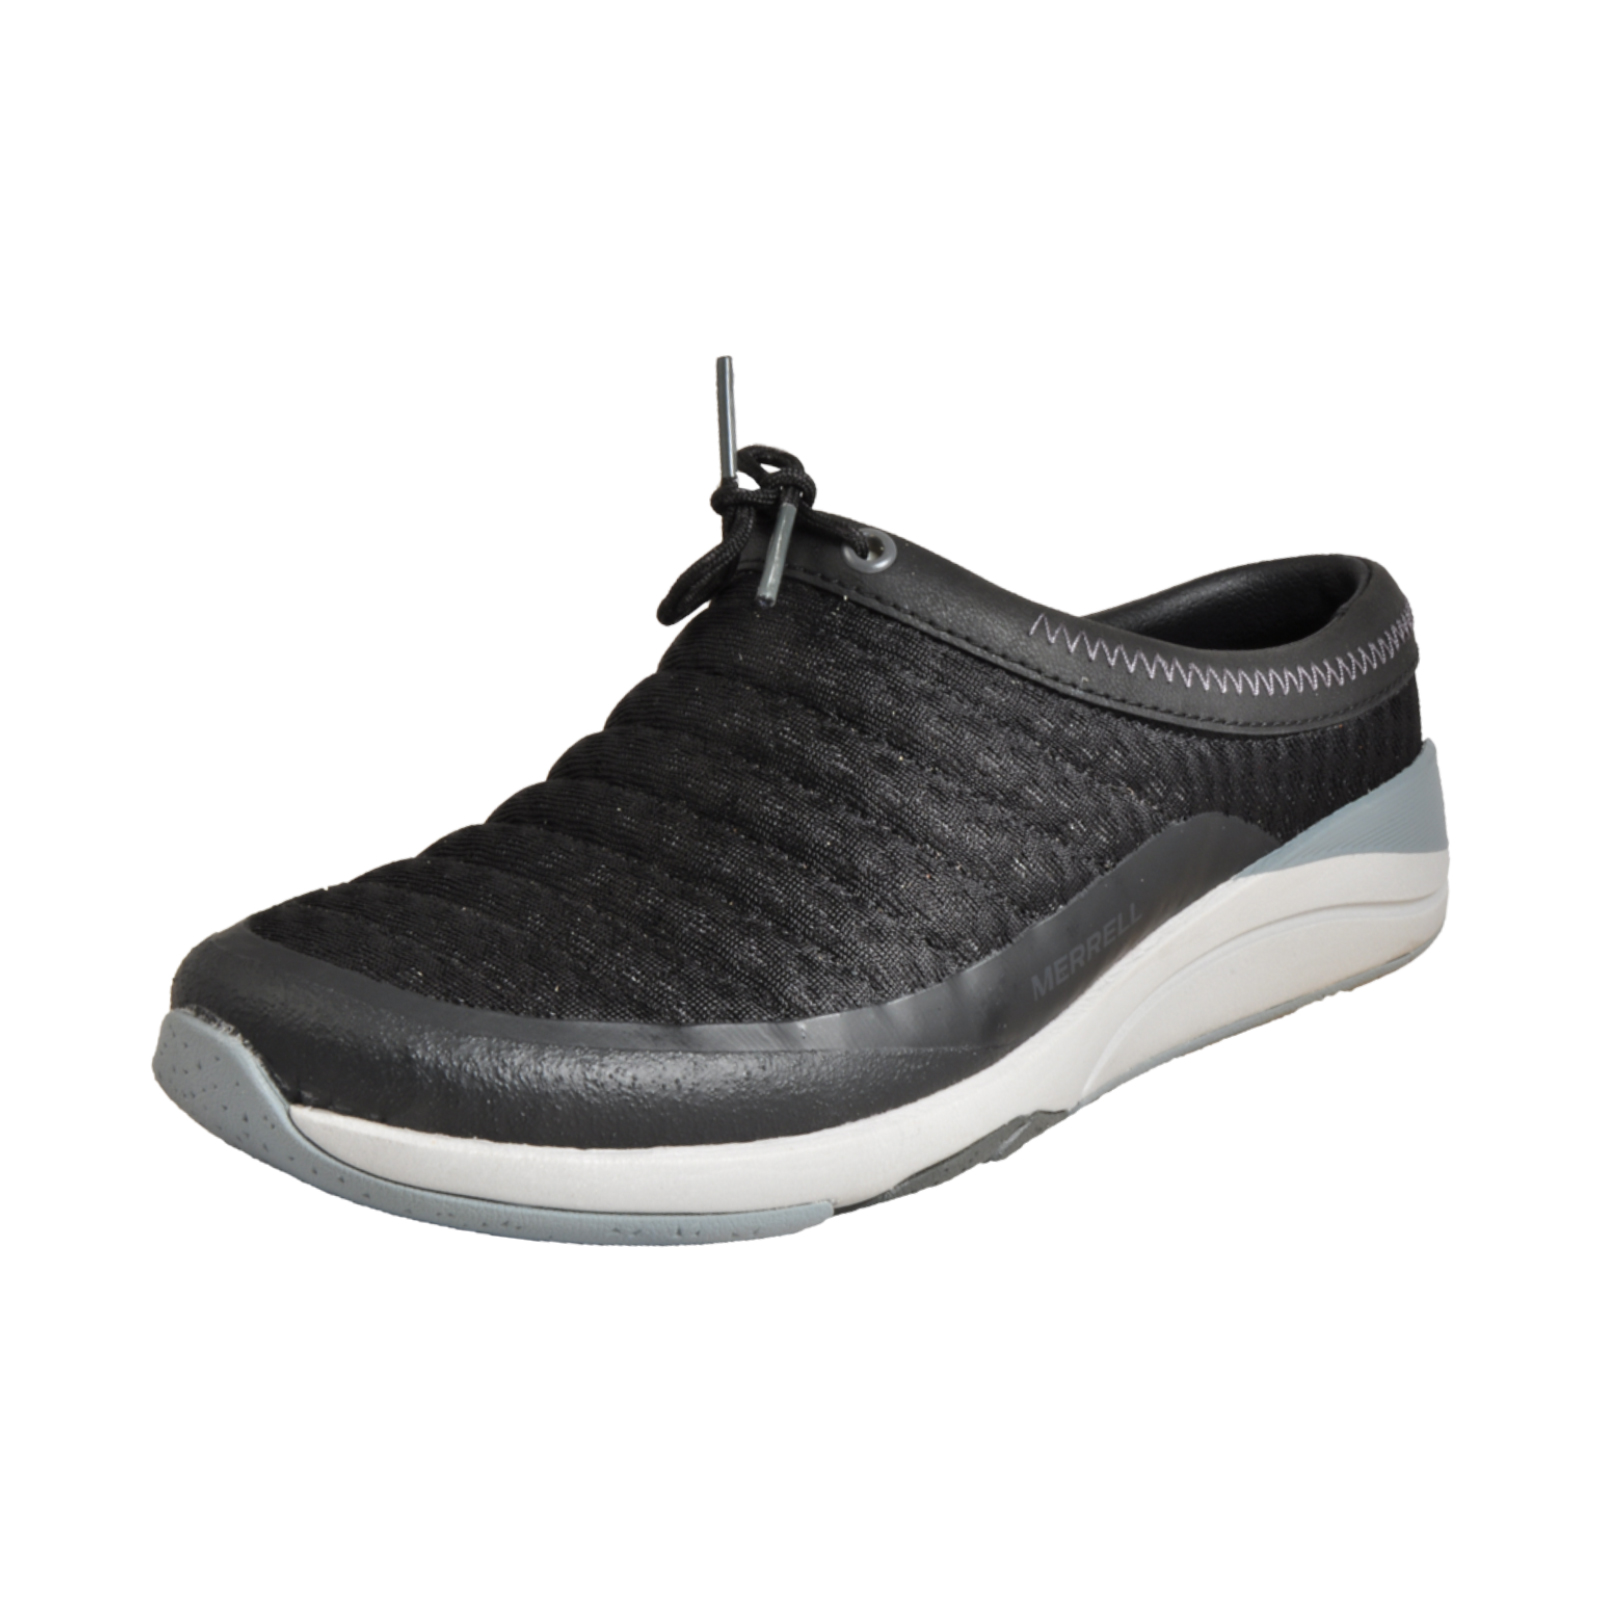 Details about Merrell Womens Ladies Applaud Breeze Slip On Casual Outdoor  Sports Shoes Black U 2afbefb38